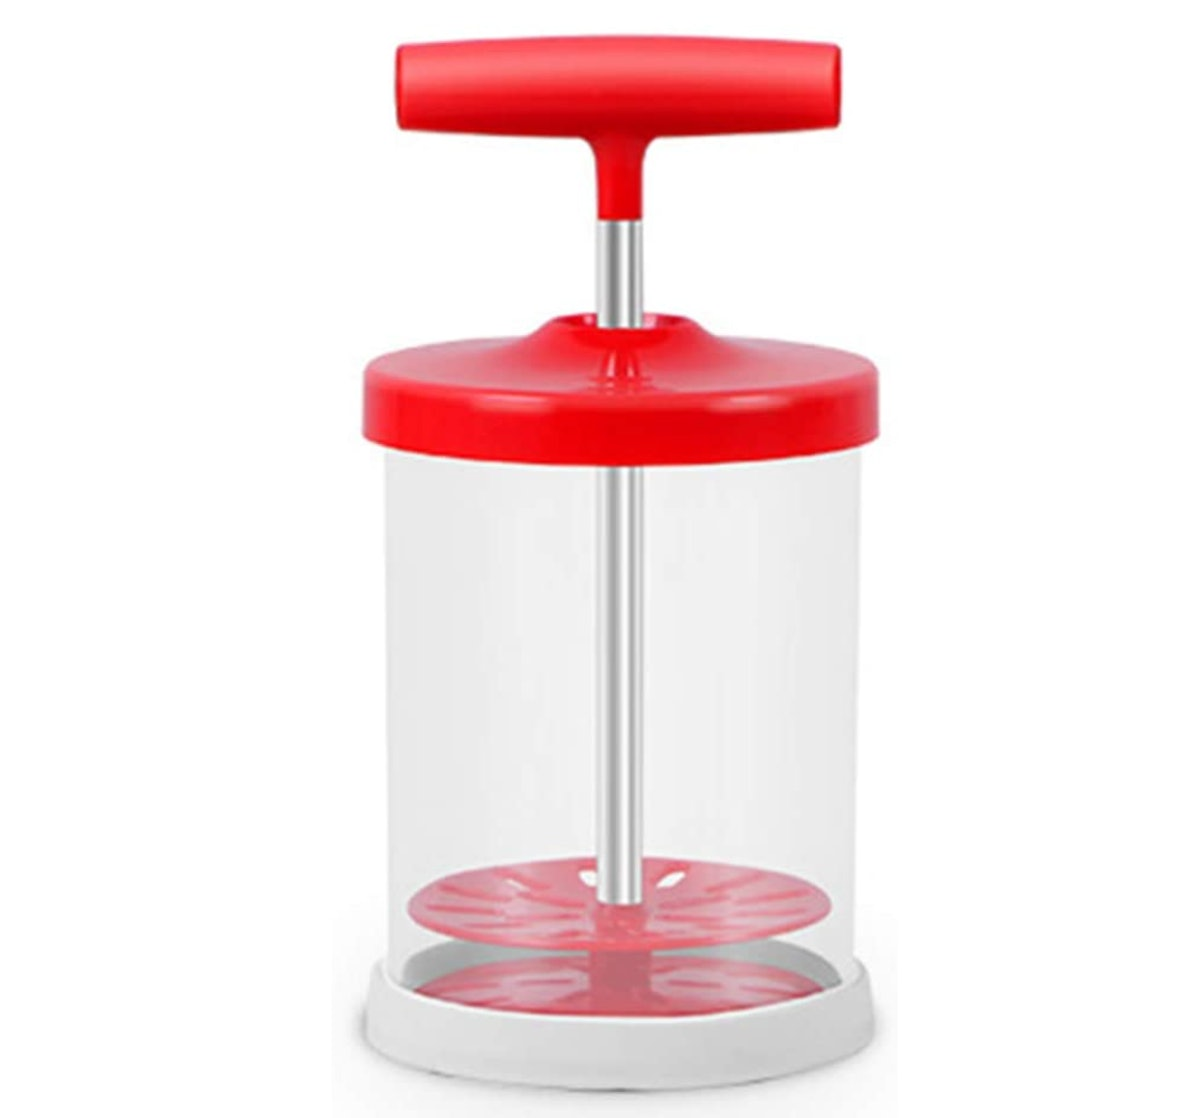 Miecux Whipping Cream Dispenser